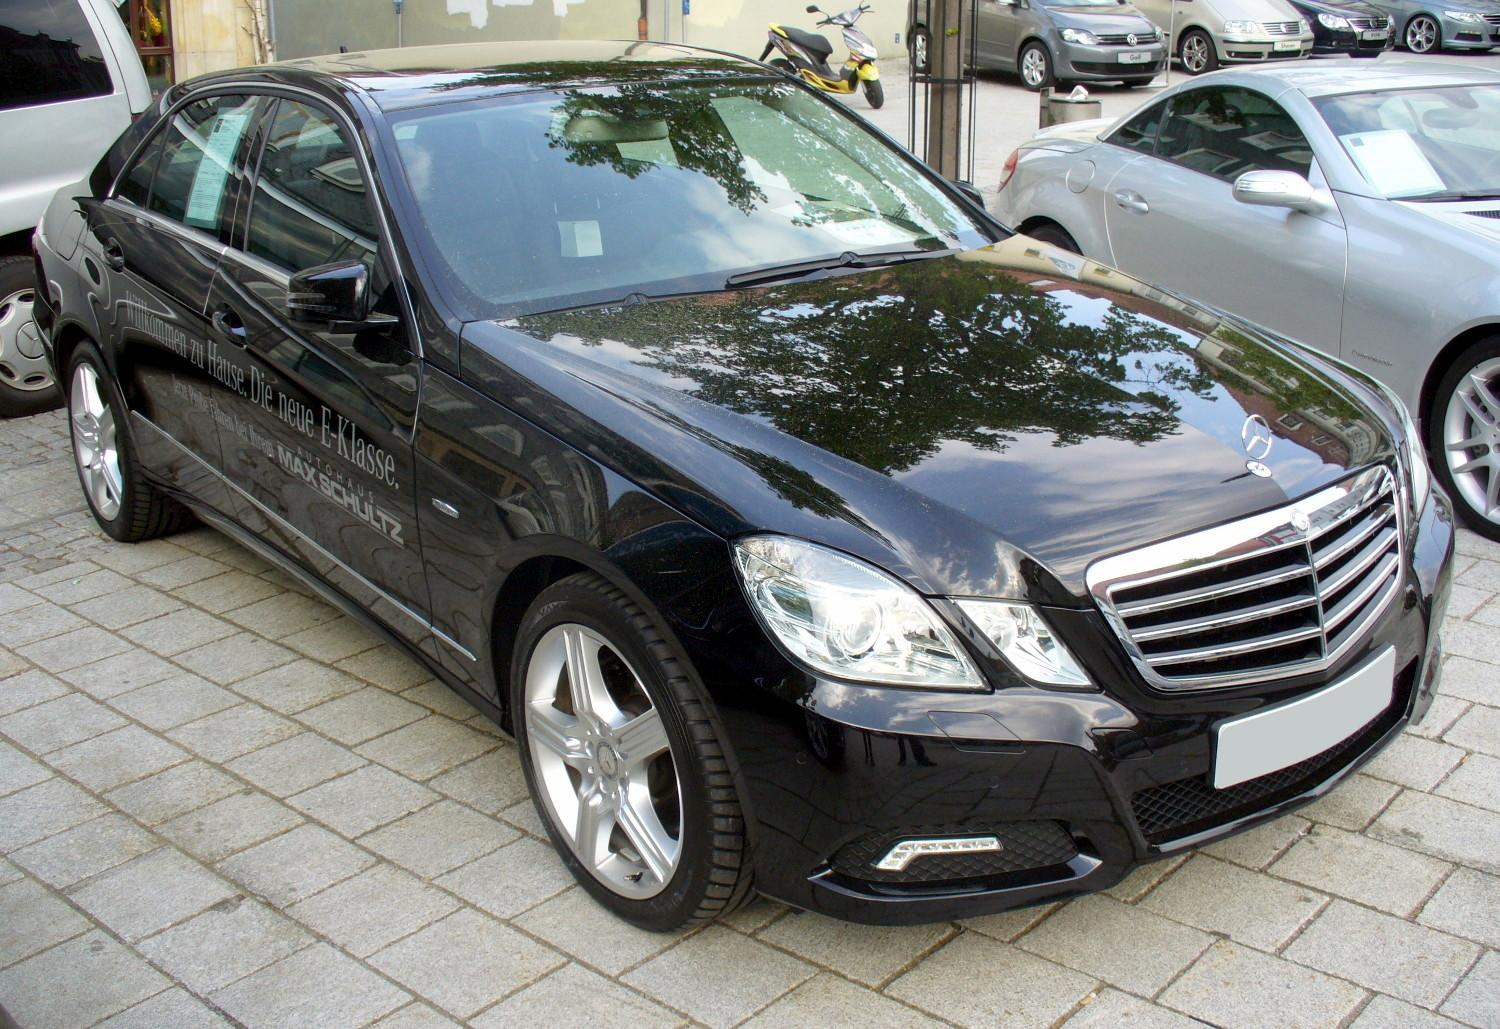 File Mercedes Benz W212 E 250 Cdi Obsidianschwarz Jpg Wikimedia Commons